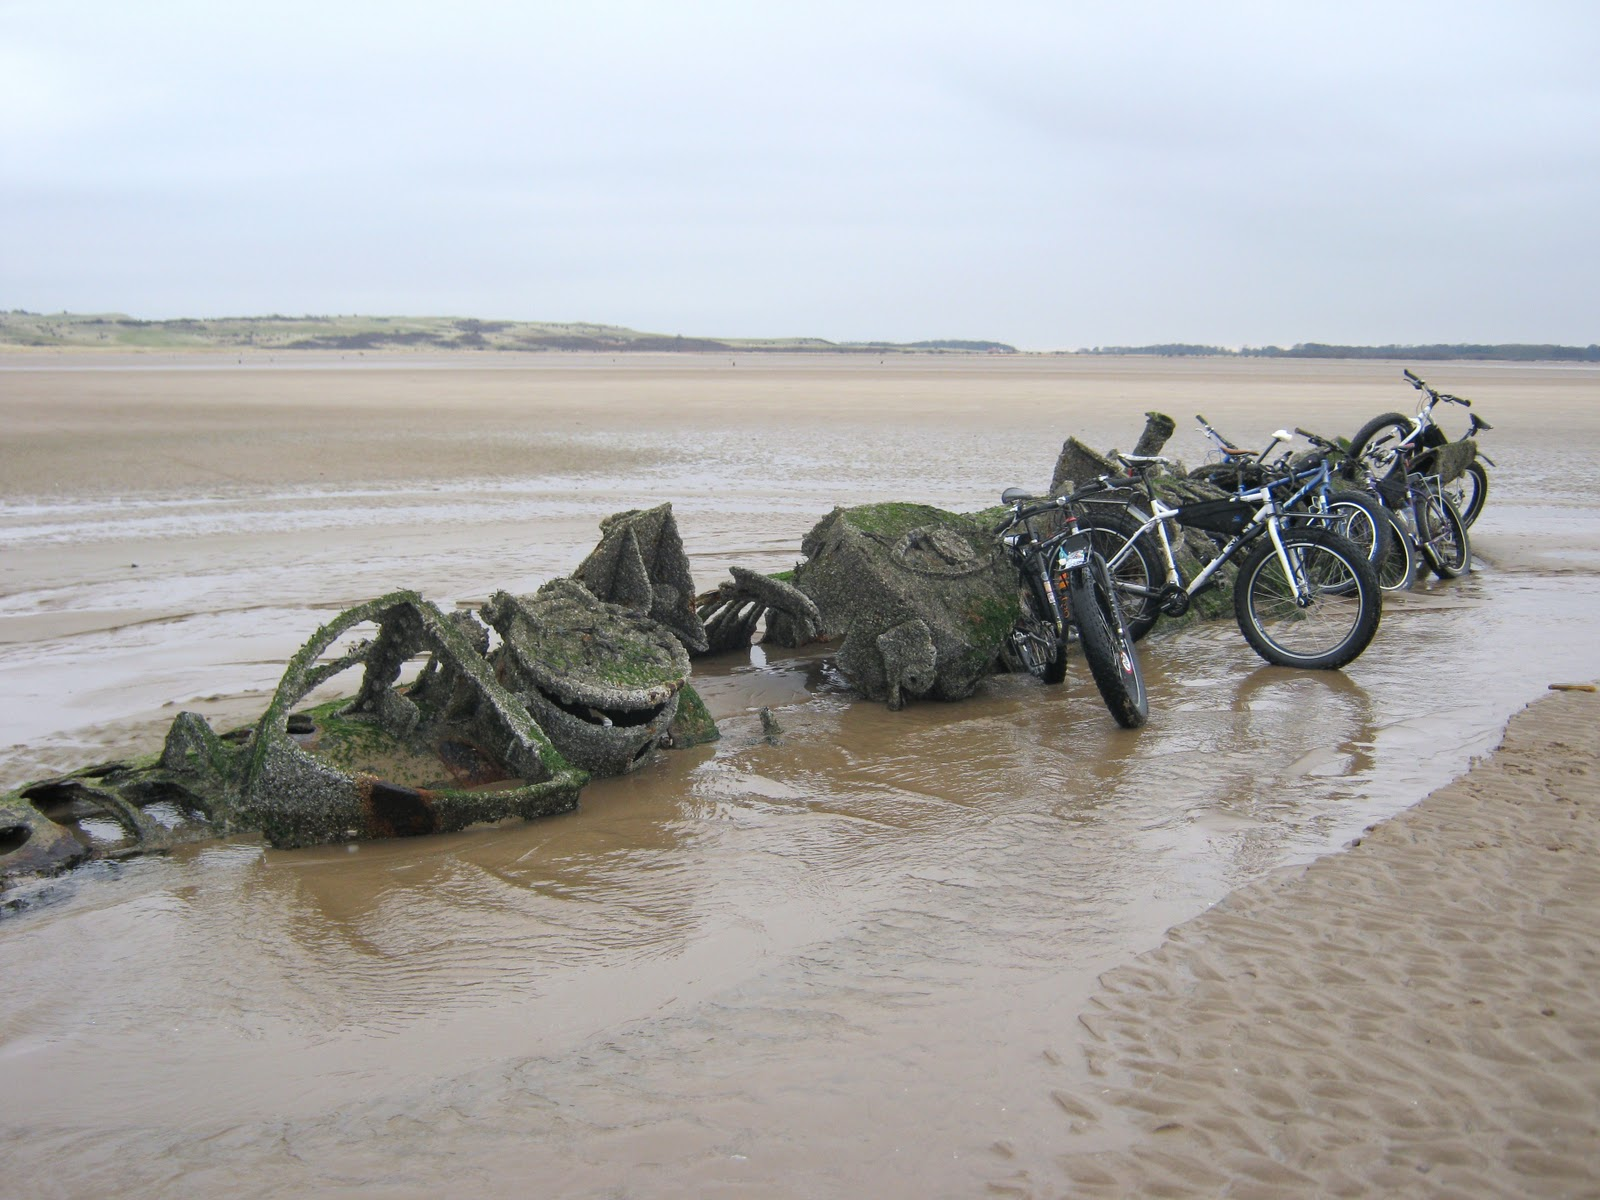 German Tank Wrecks http://coastkid.blogspot.com/2012/01/ww2-xt-class-submarine-wrecks-aberlady.html